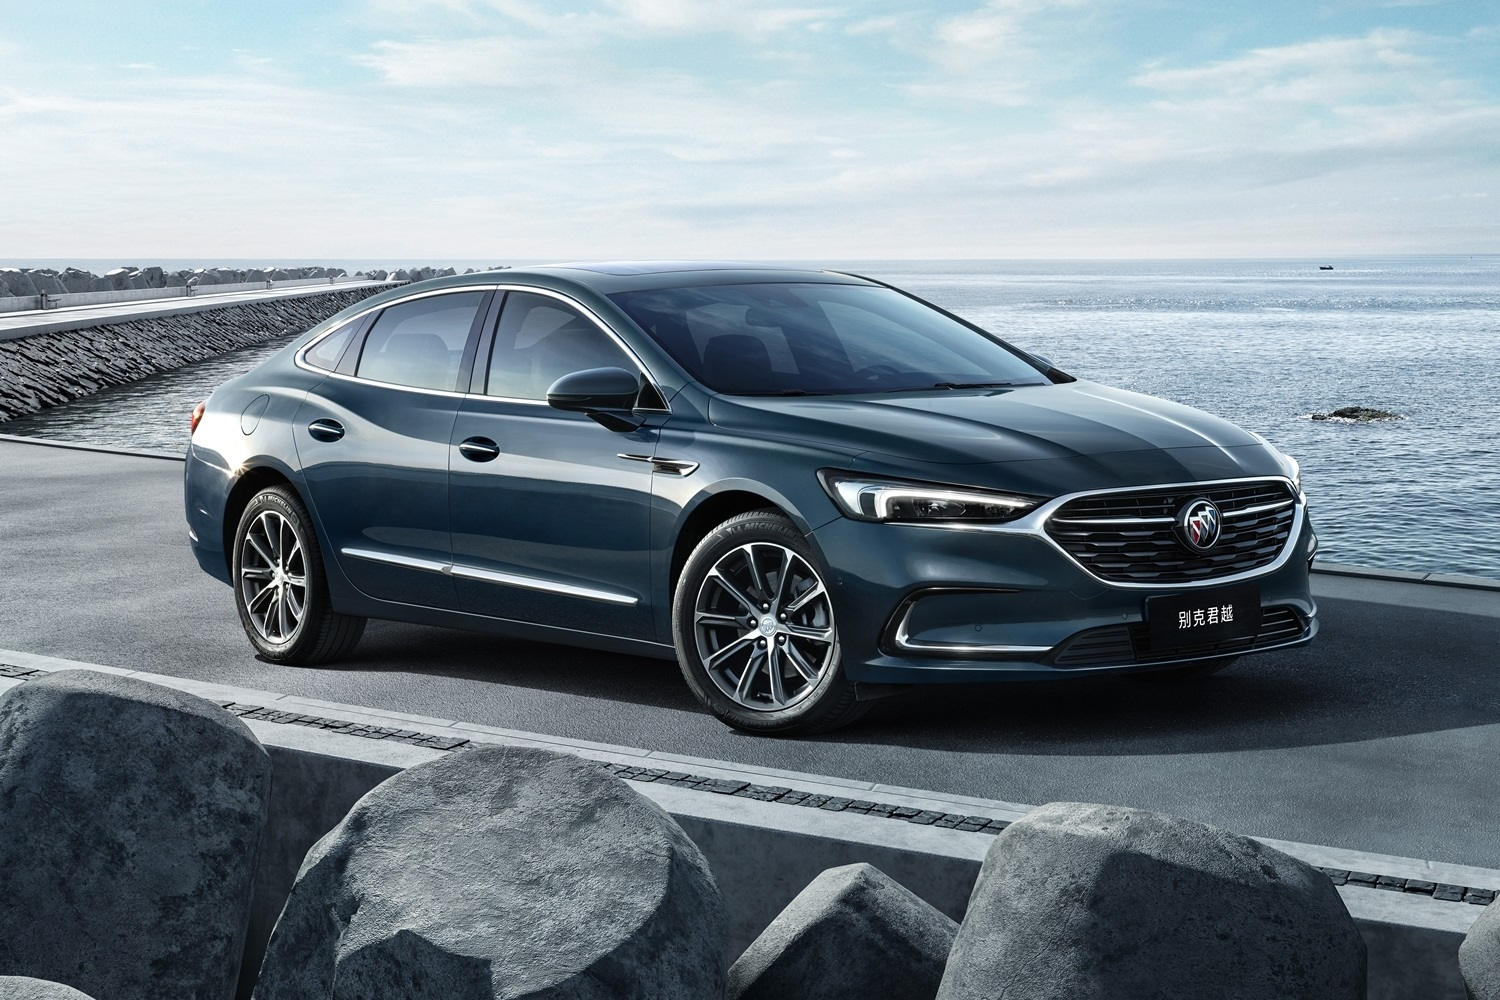 2021 Buick Lacrosse Gets More Refined Than Ever | Gm Authority New 2021 Buick Cascada Oil Type, Options, Reviews